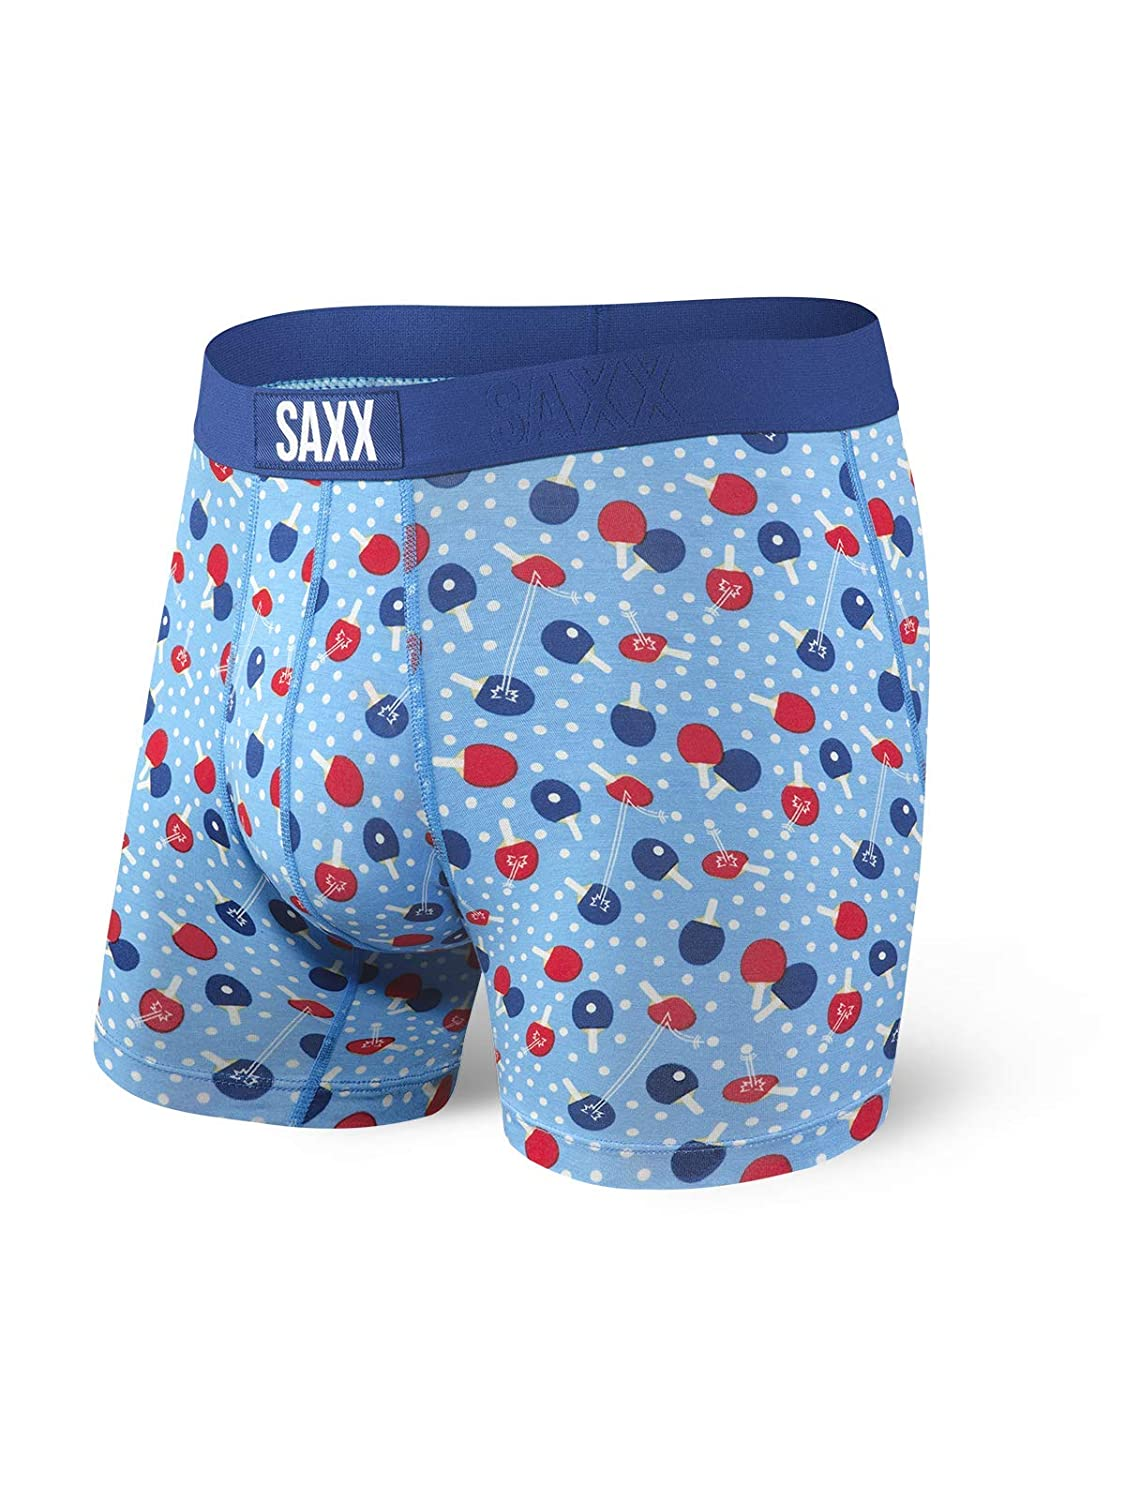 SAXX Underwear Mens Vibe Boxer Brief with BallPark Pouch